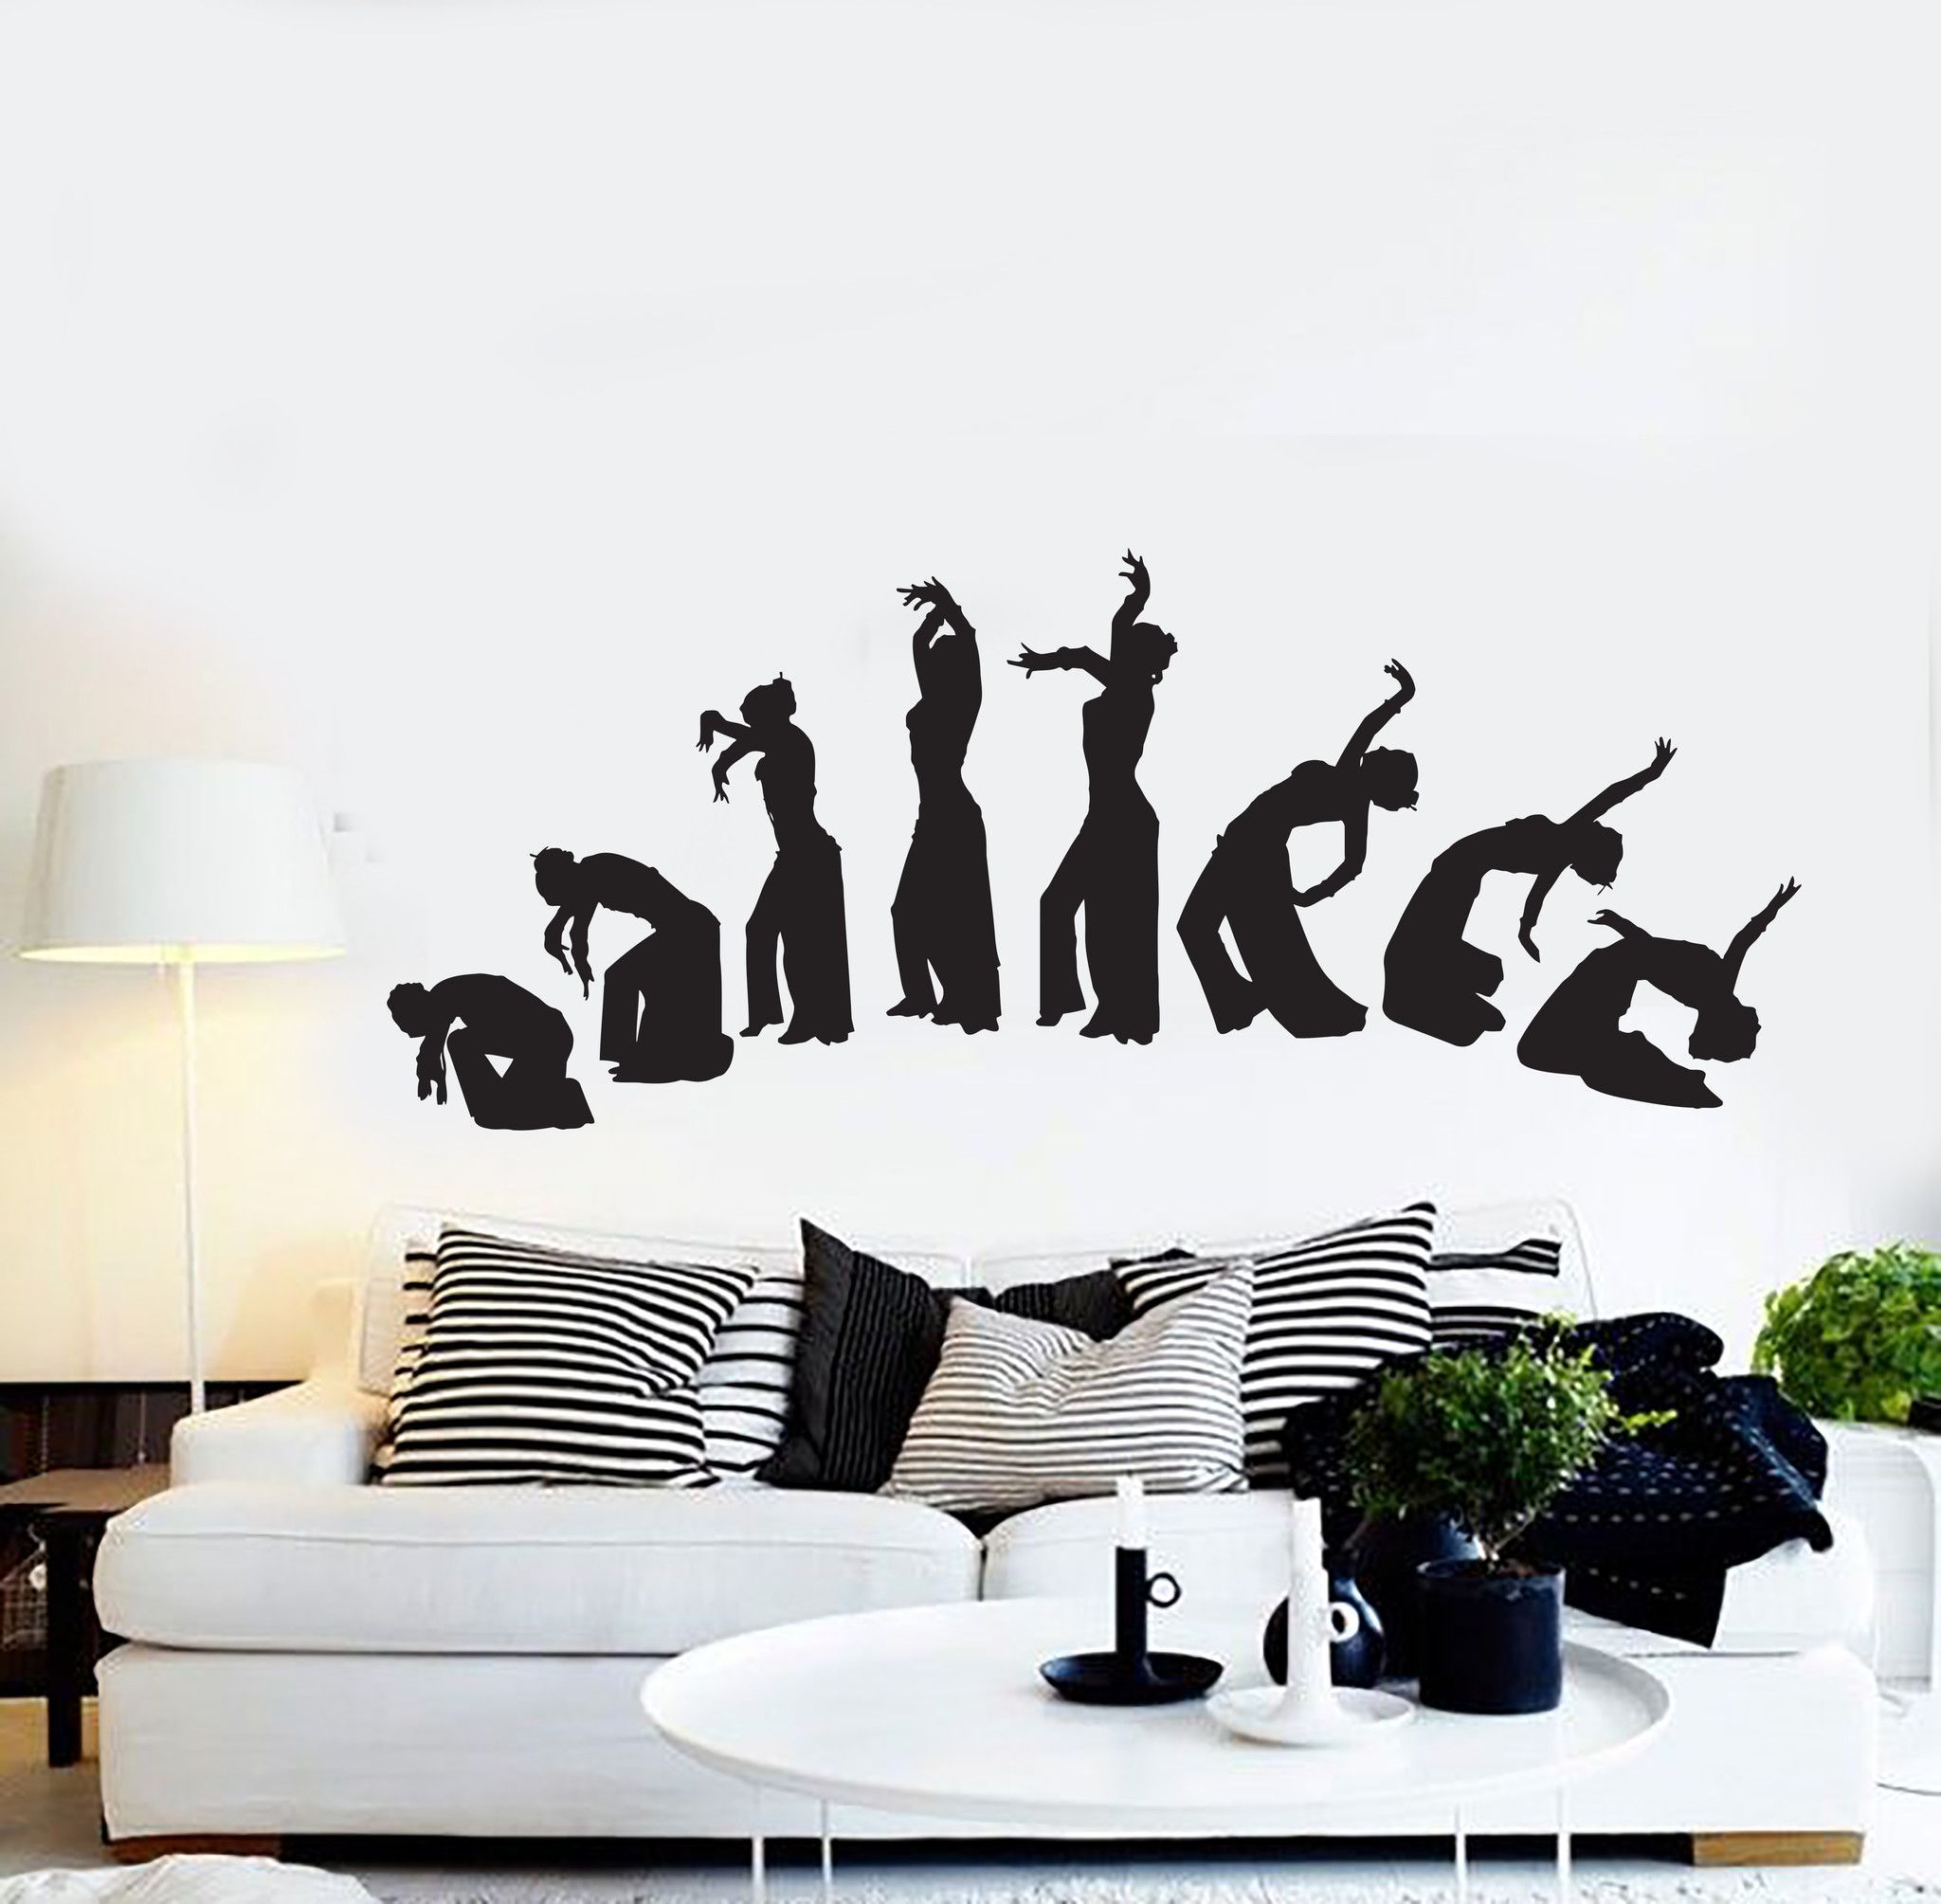 Vinyl Wall Decal Belly Dance Dancing Girl Woman Stickers Mural - Custom vinyl wall decals dance